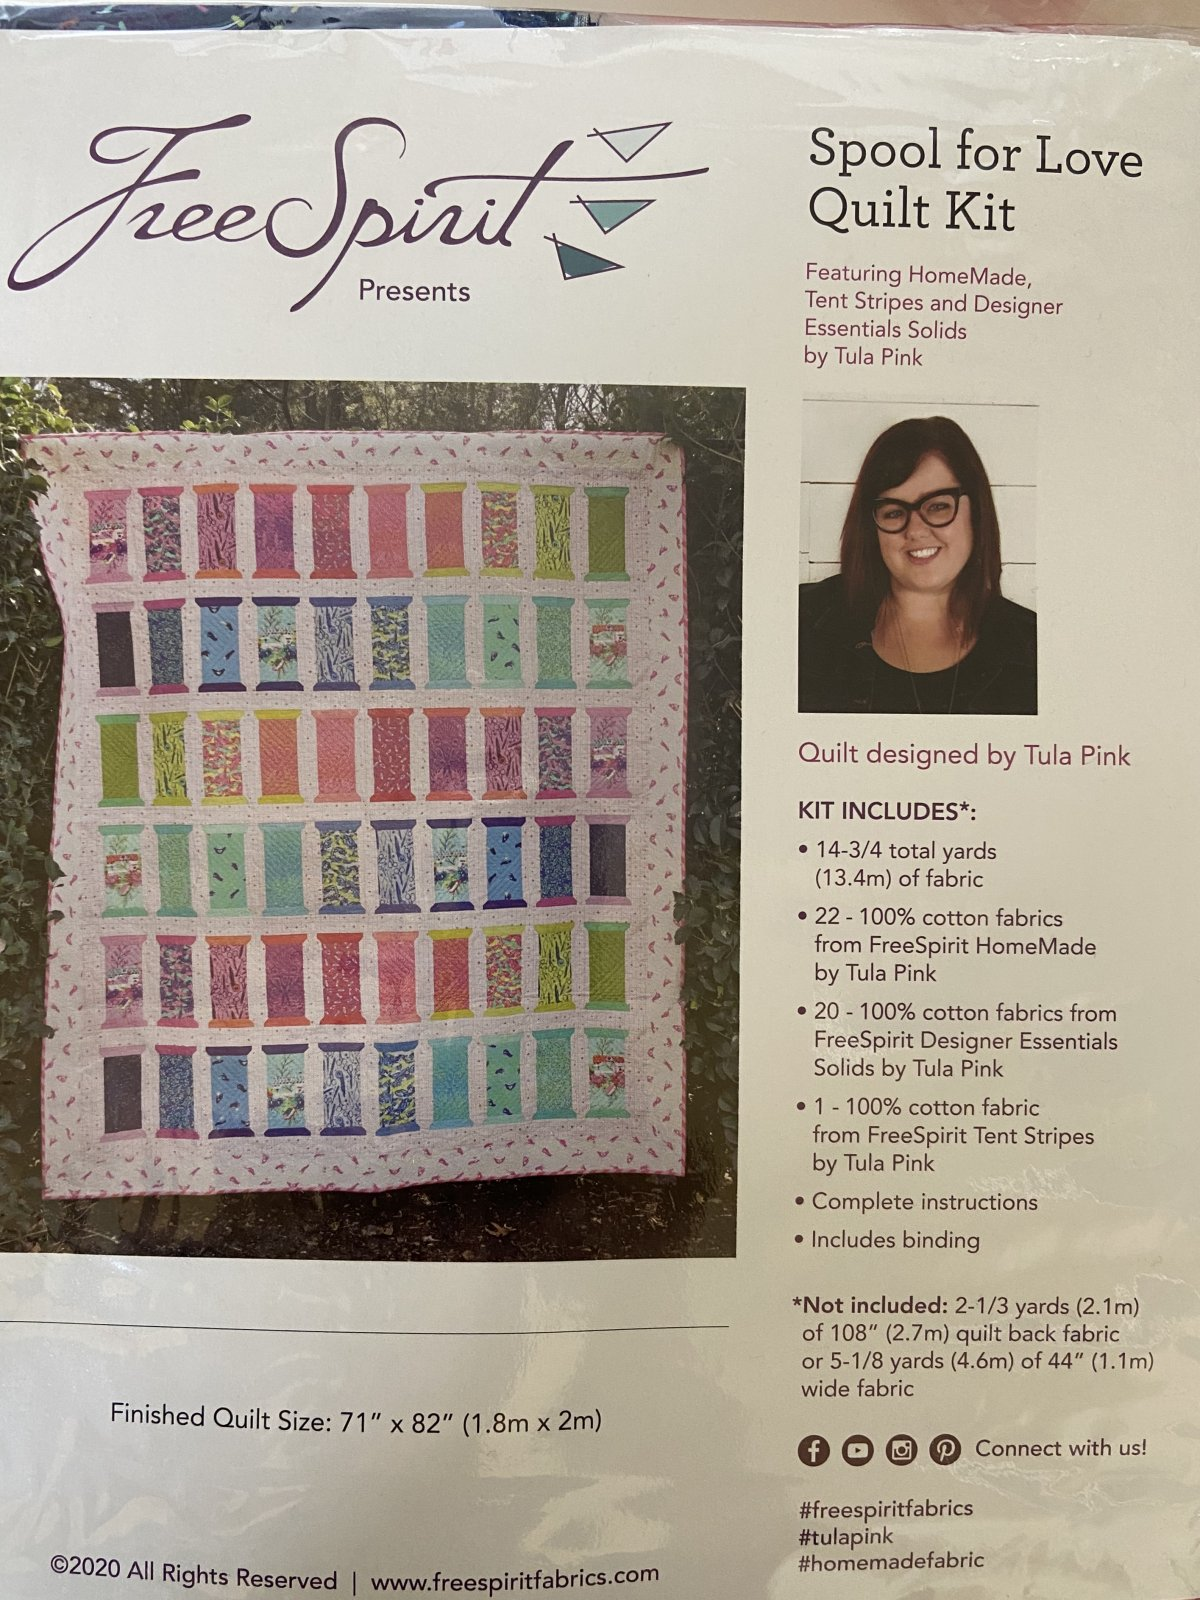 Tula Pink - Spool for Love Quilt Kit